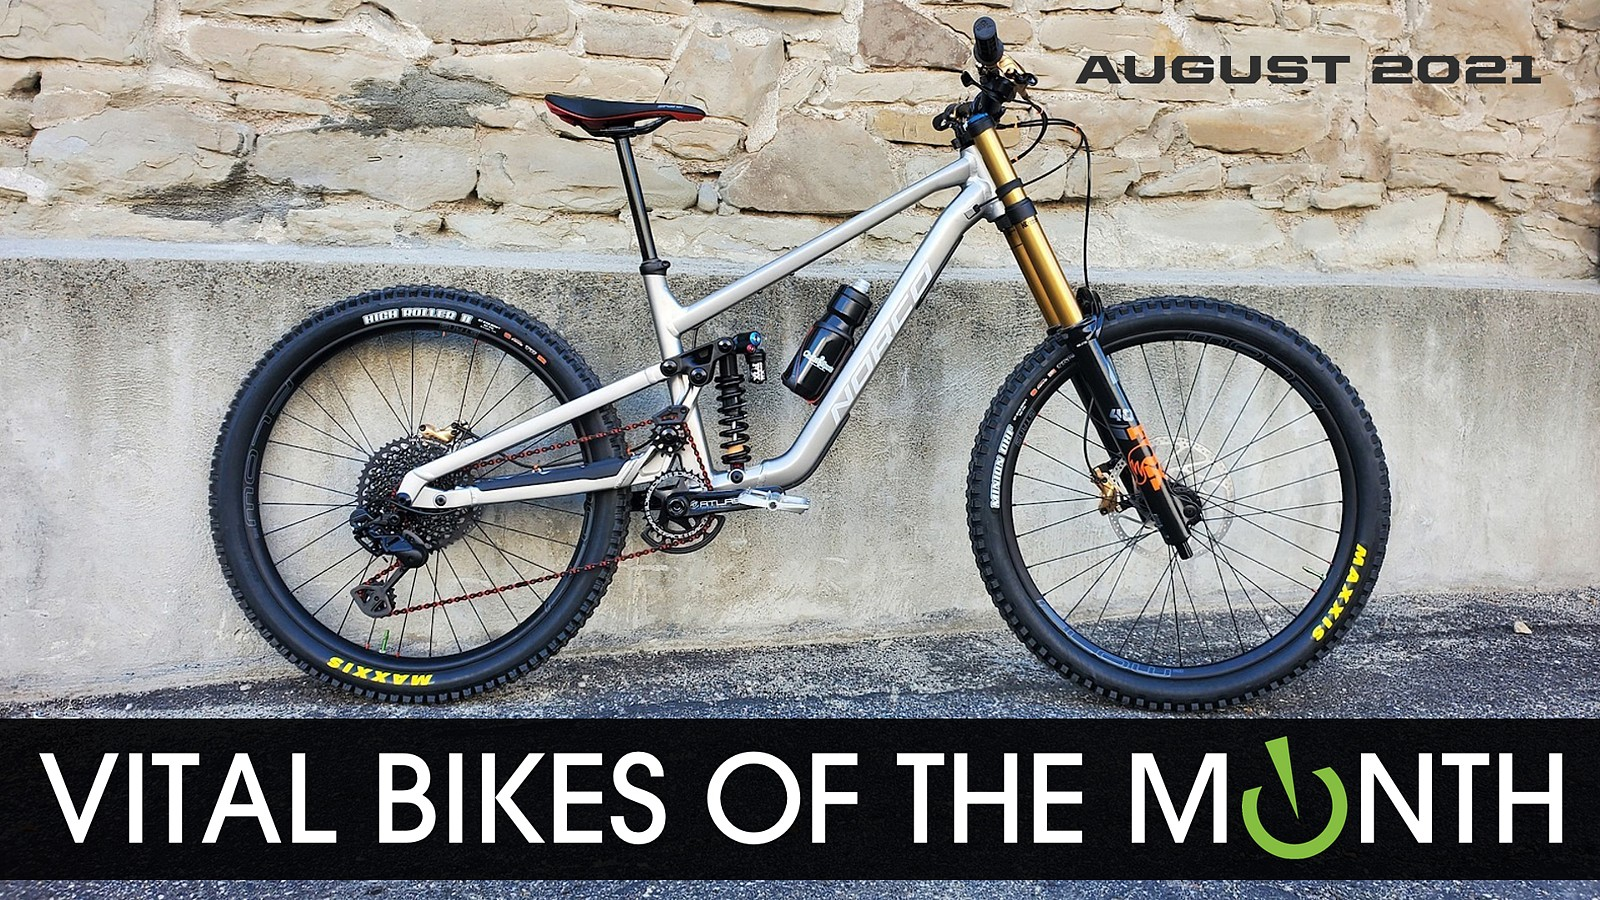 Vital Bikes of the Month, August 2021 - Vital Bike of the Day August 2021 - Mountain Biking Pictures - Vital MTB